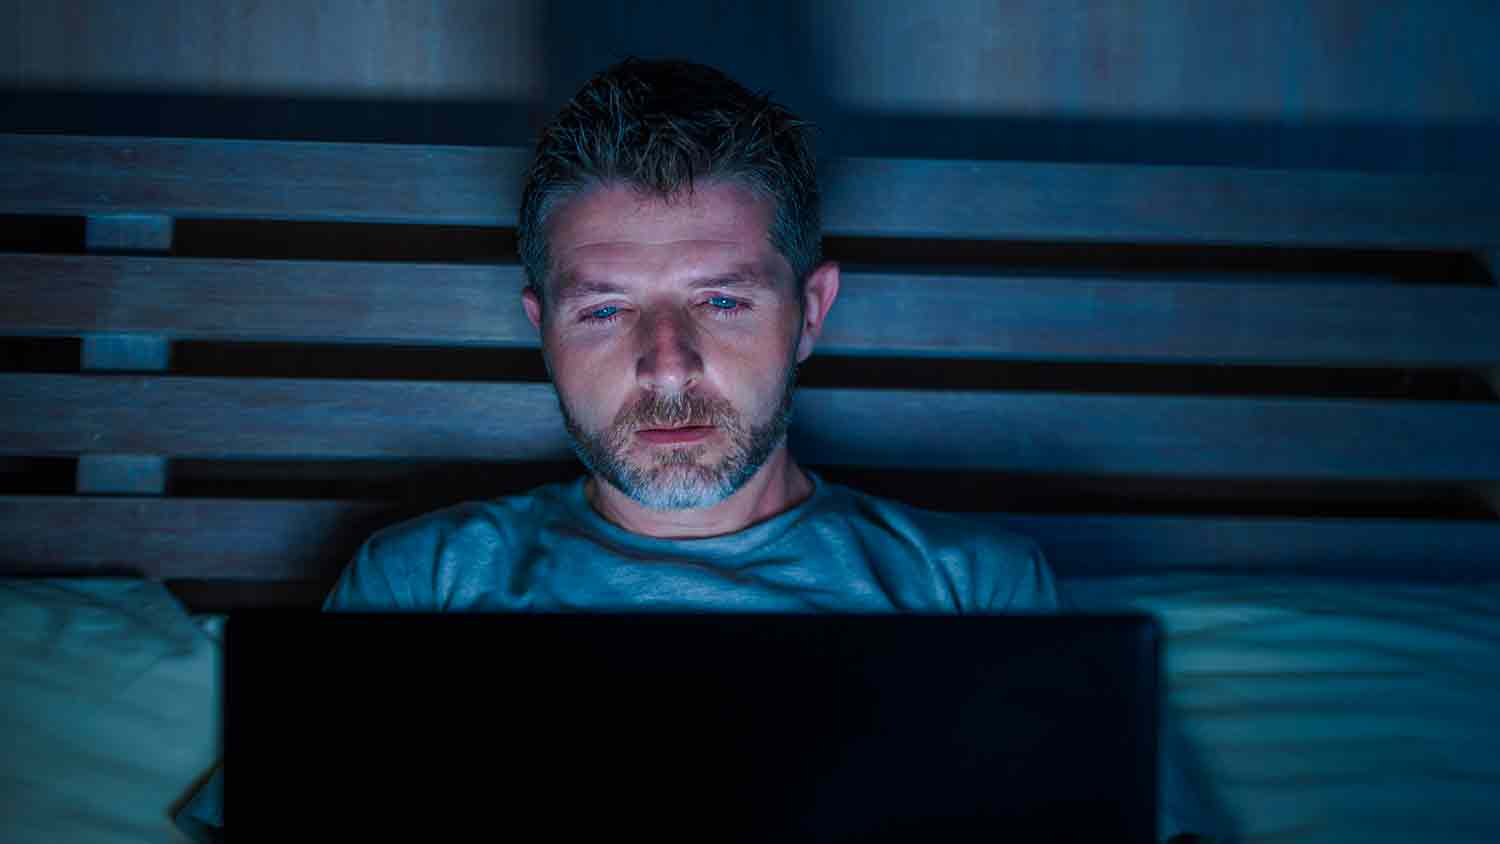 Man illuminated by a laptop in a dark bedroom. He appears upset.